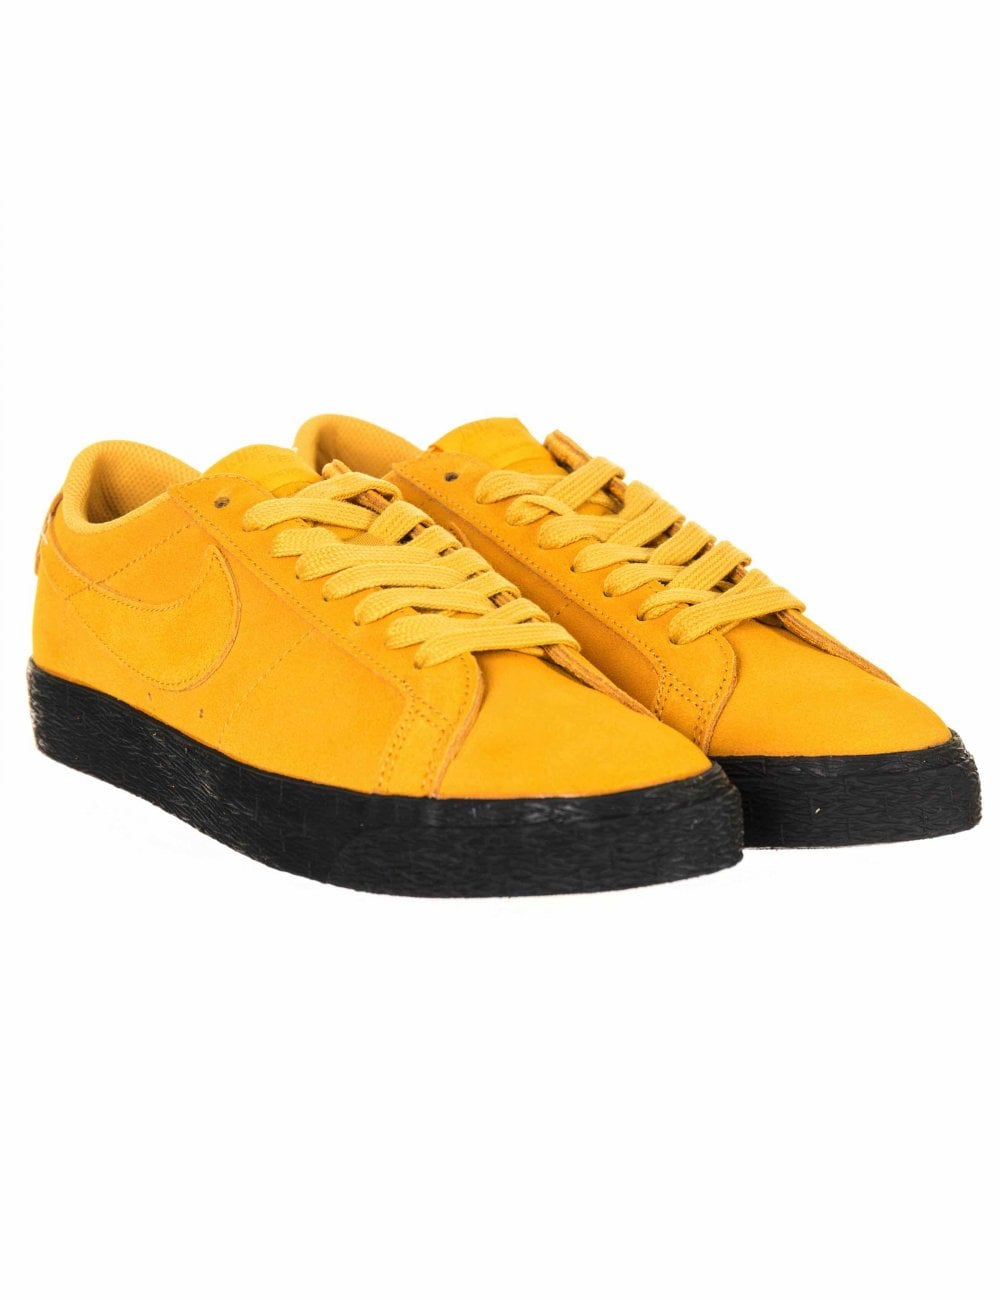 competitive price d93cf d320e Nike SB Zoom Blazer Low Trainers - Yellow Ochre - Footwear from Fat Buddha  Store UK